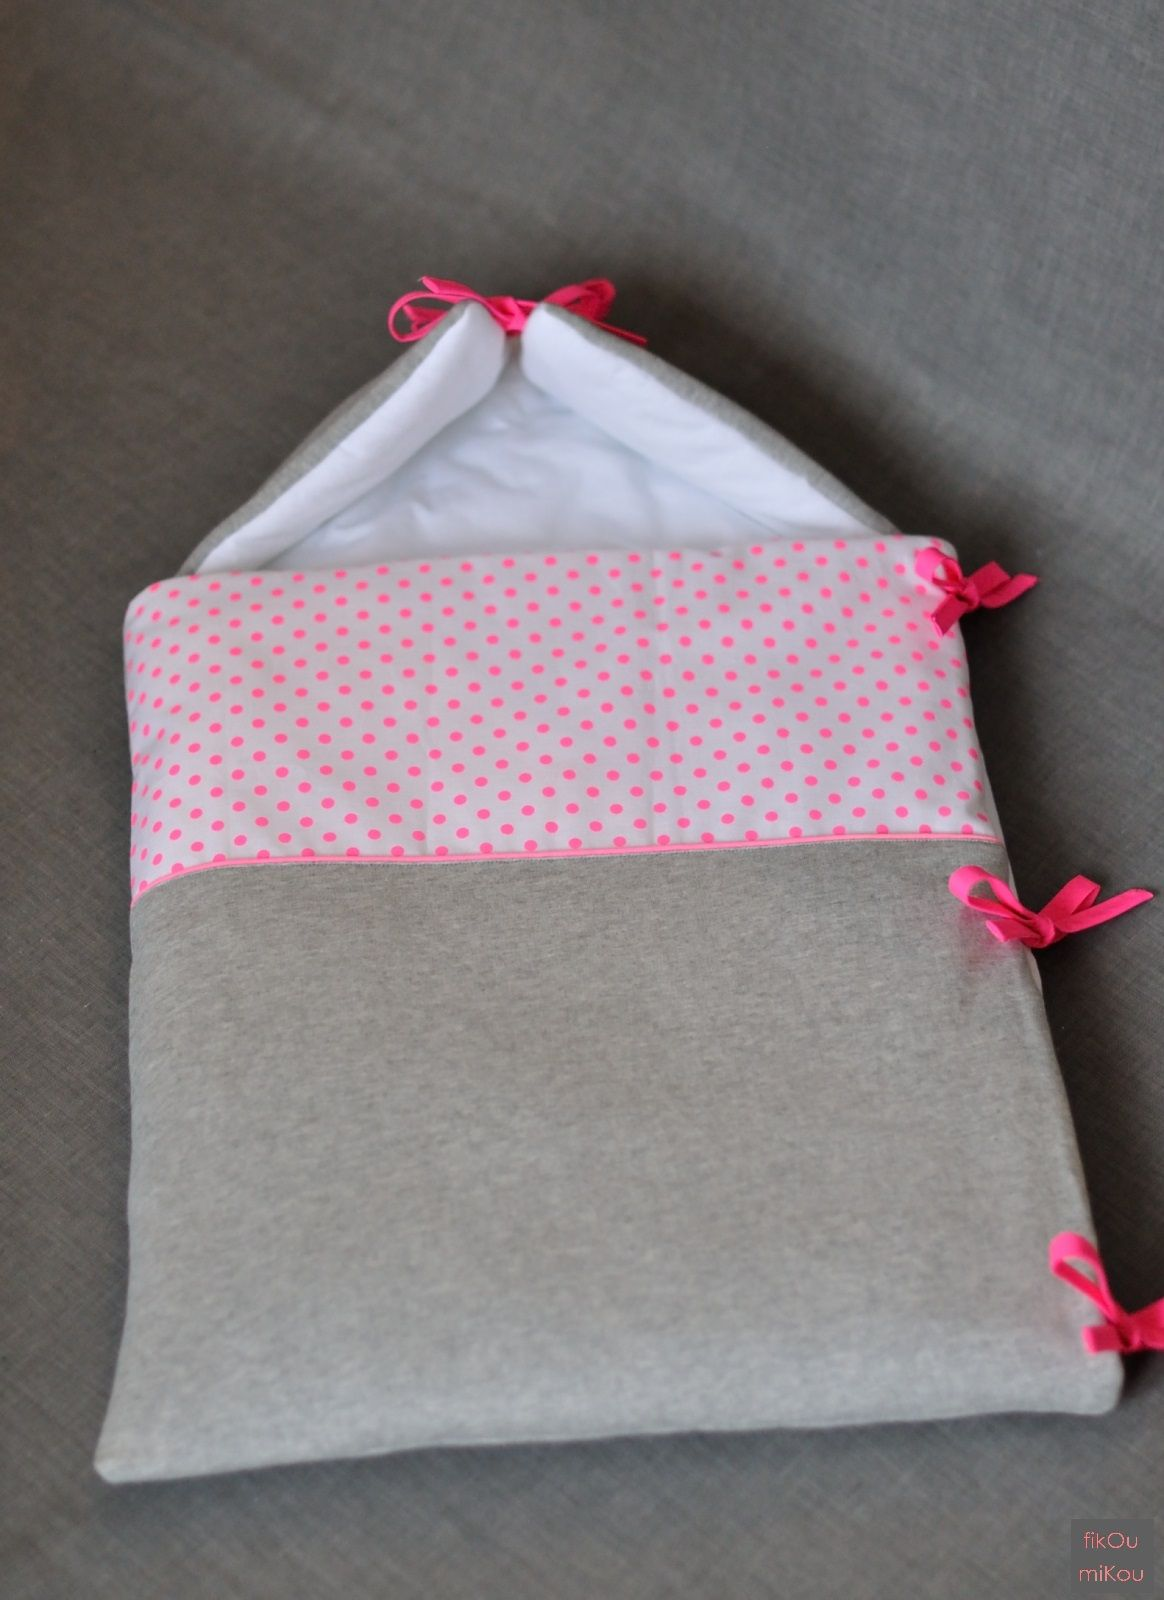 Baby bunting made out of sweatshirt material. So cozy and sweet ...